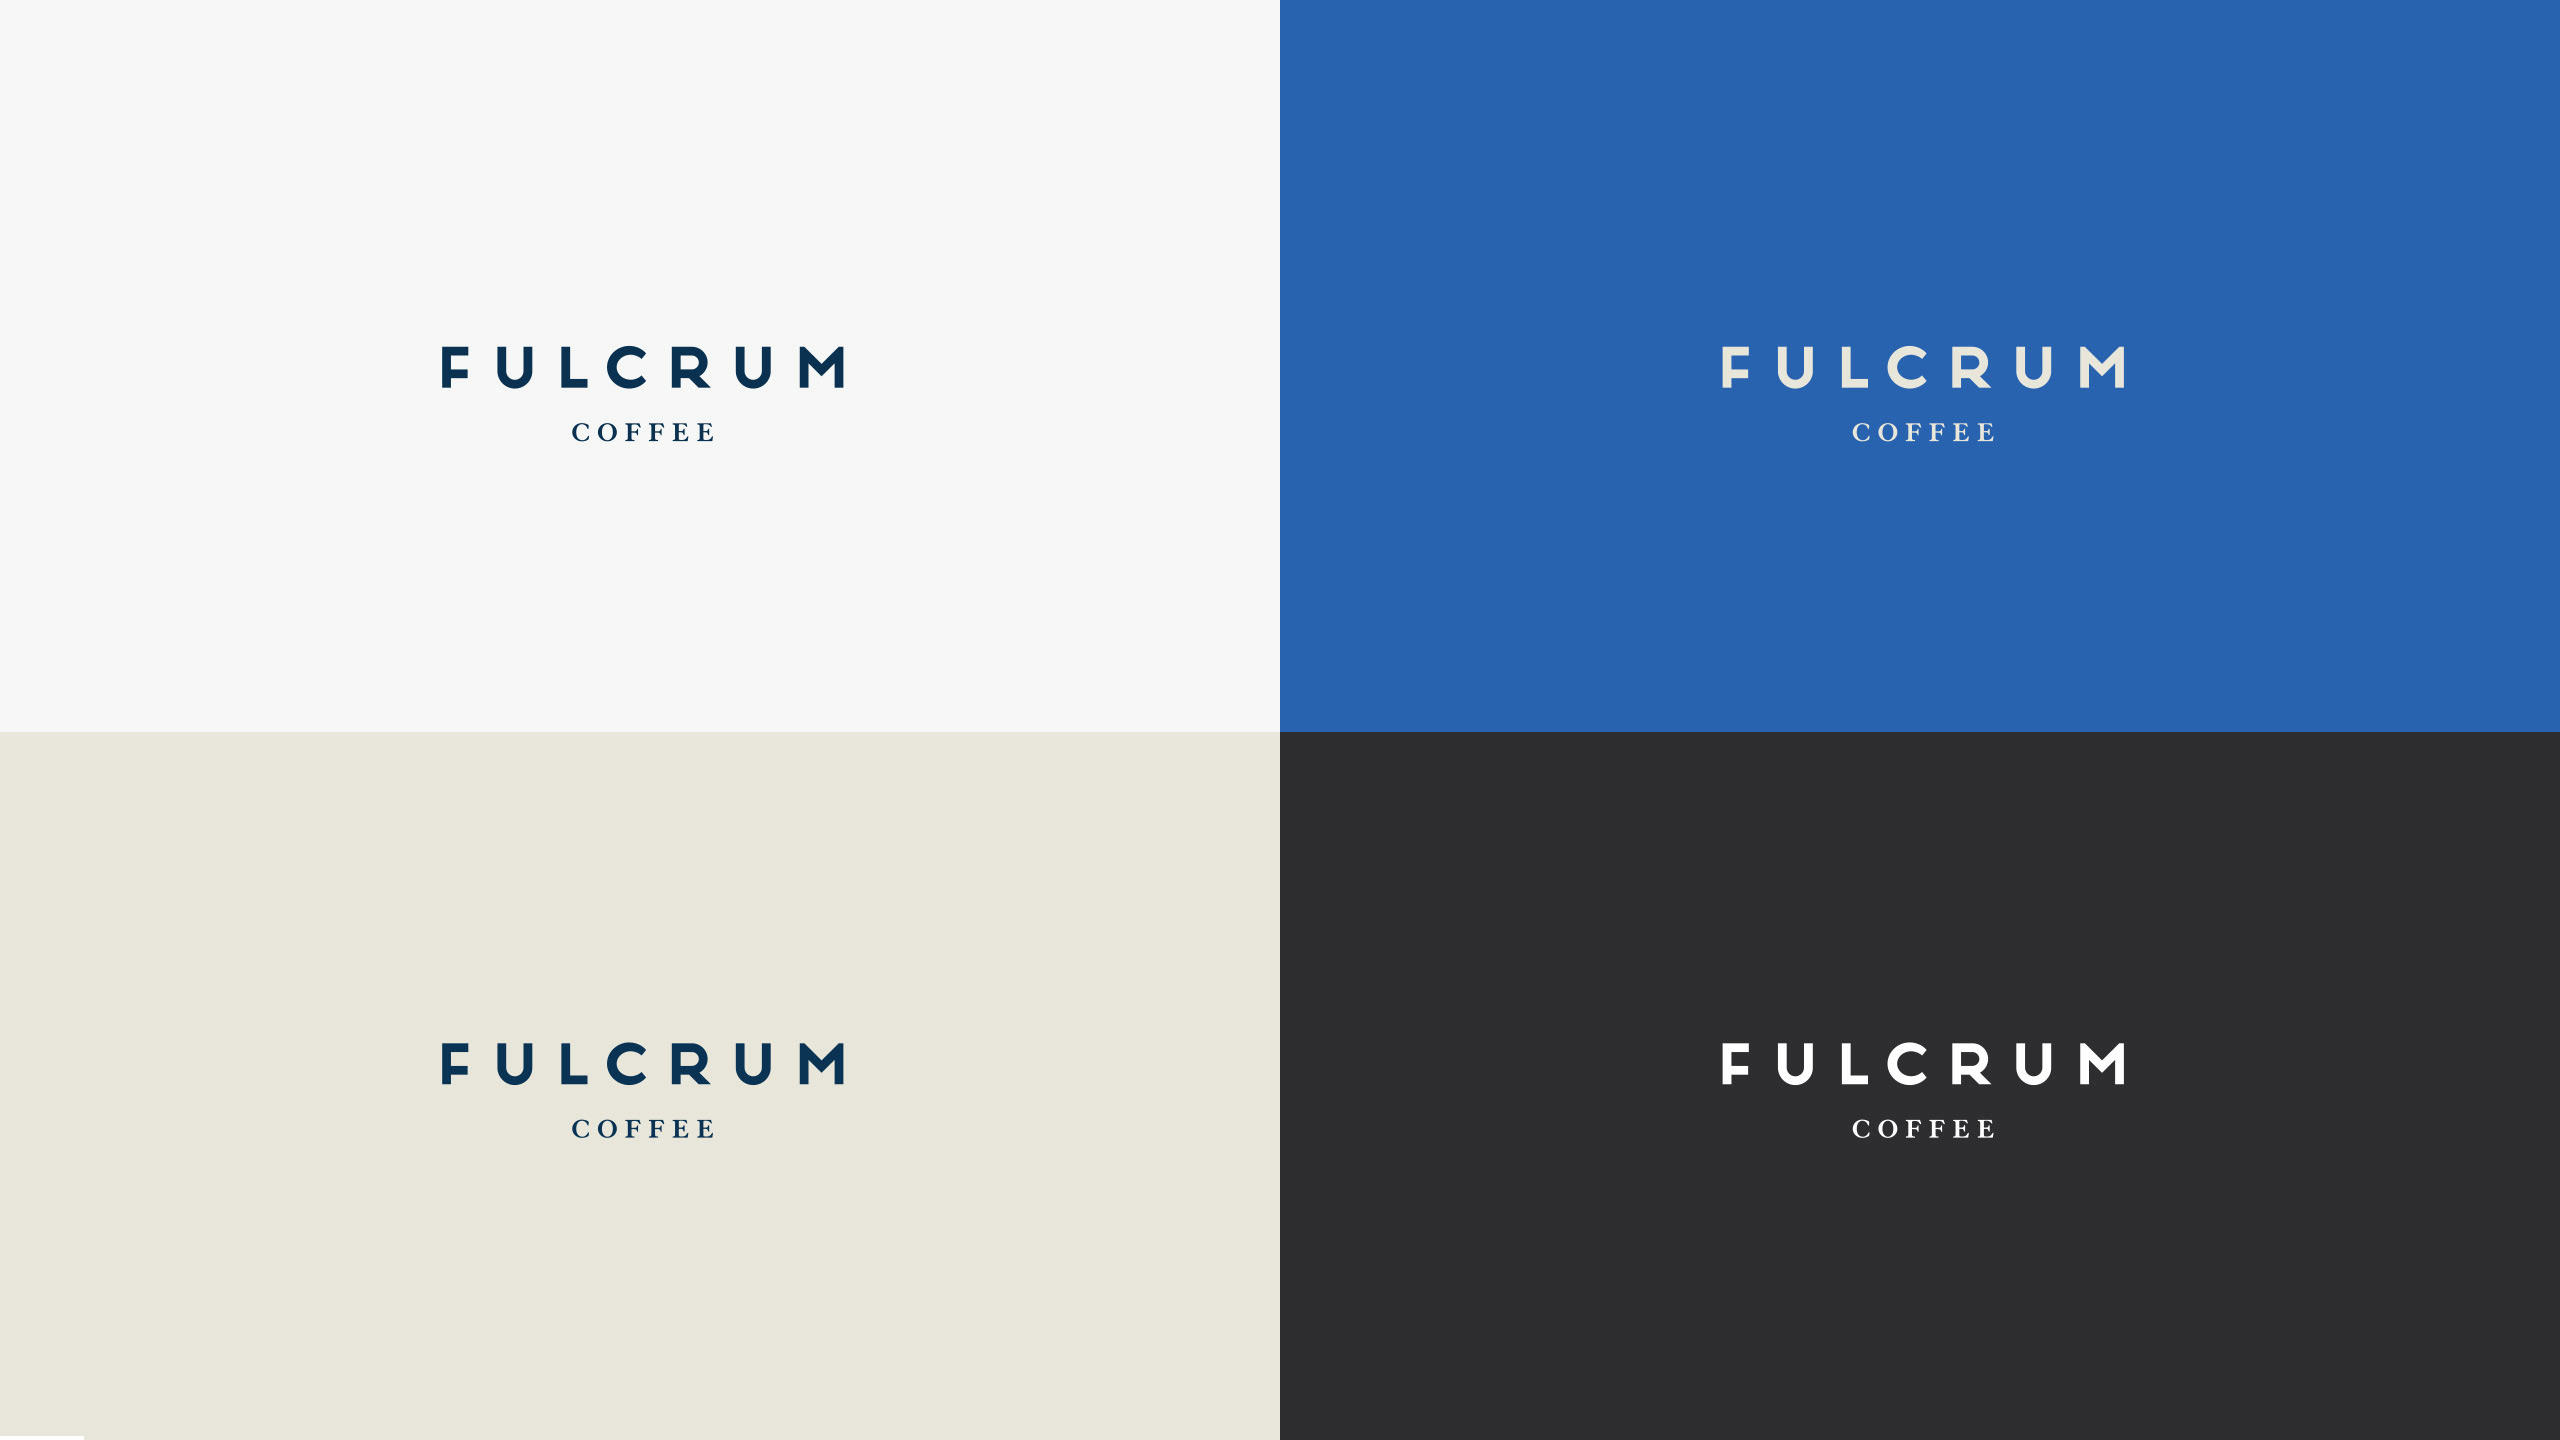 tolleson-case-study-fulcrum-coffee-11